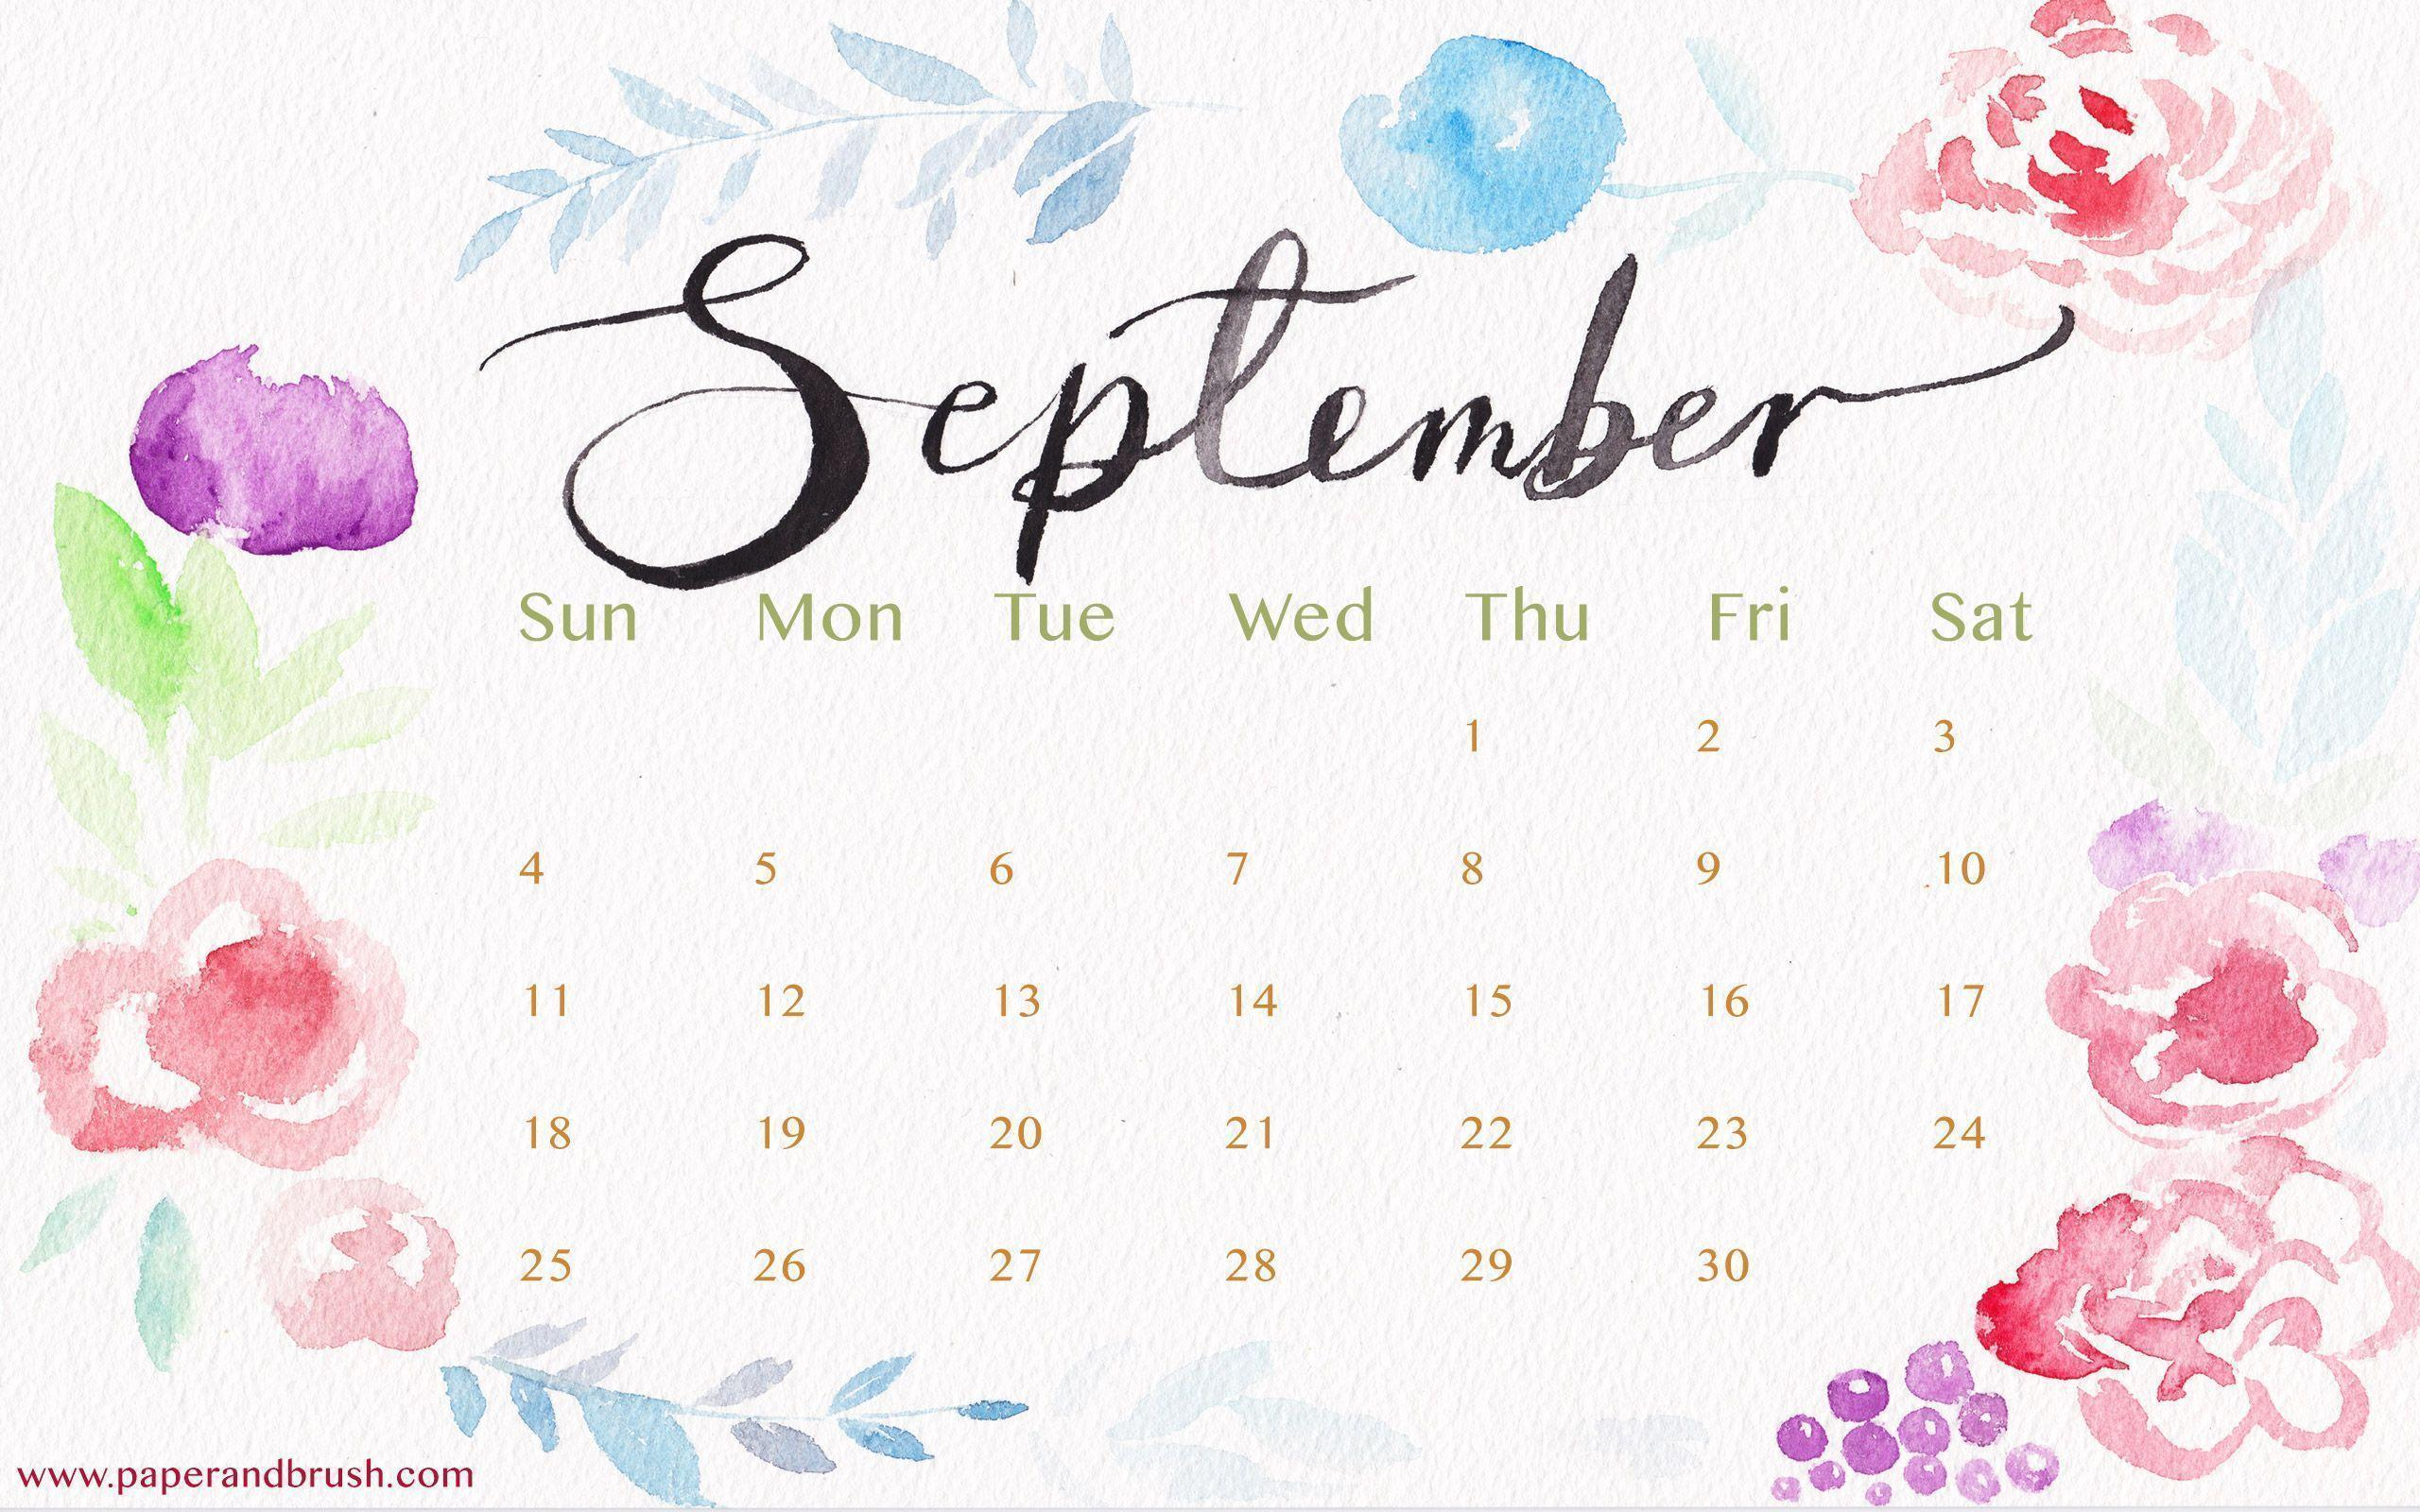 september 2015 wallpaper calendar - photo #20